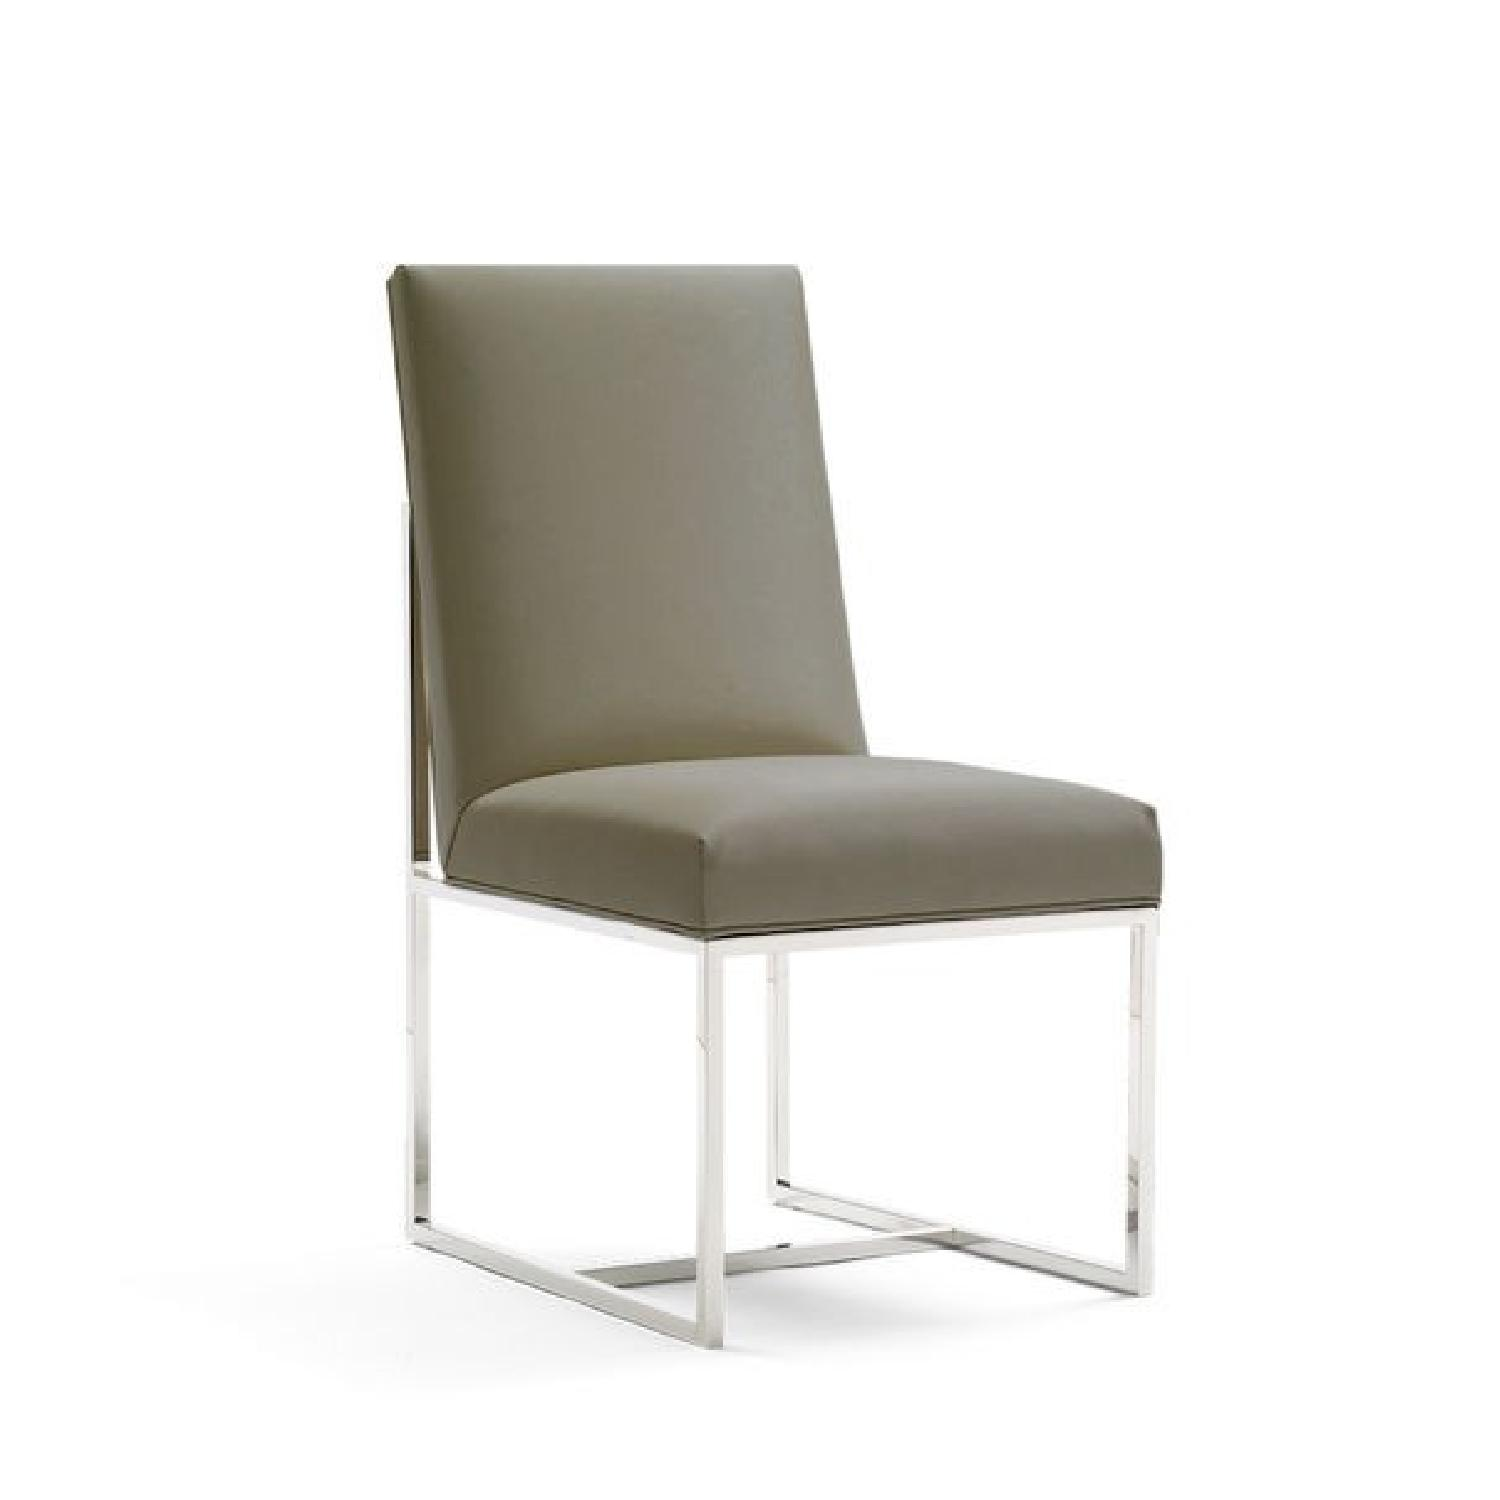 Mitchell Gold + Bob Williams Gage Low Dining Chair